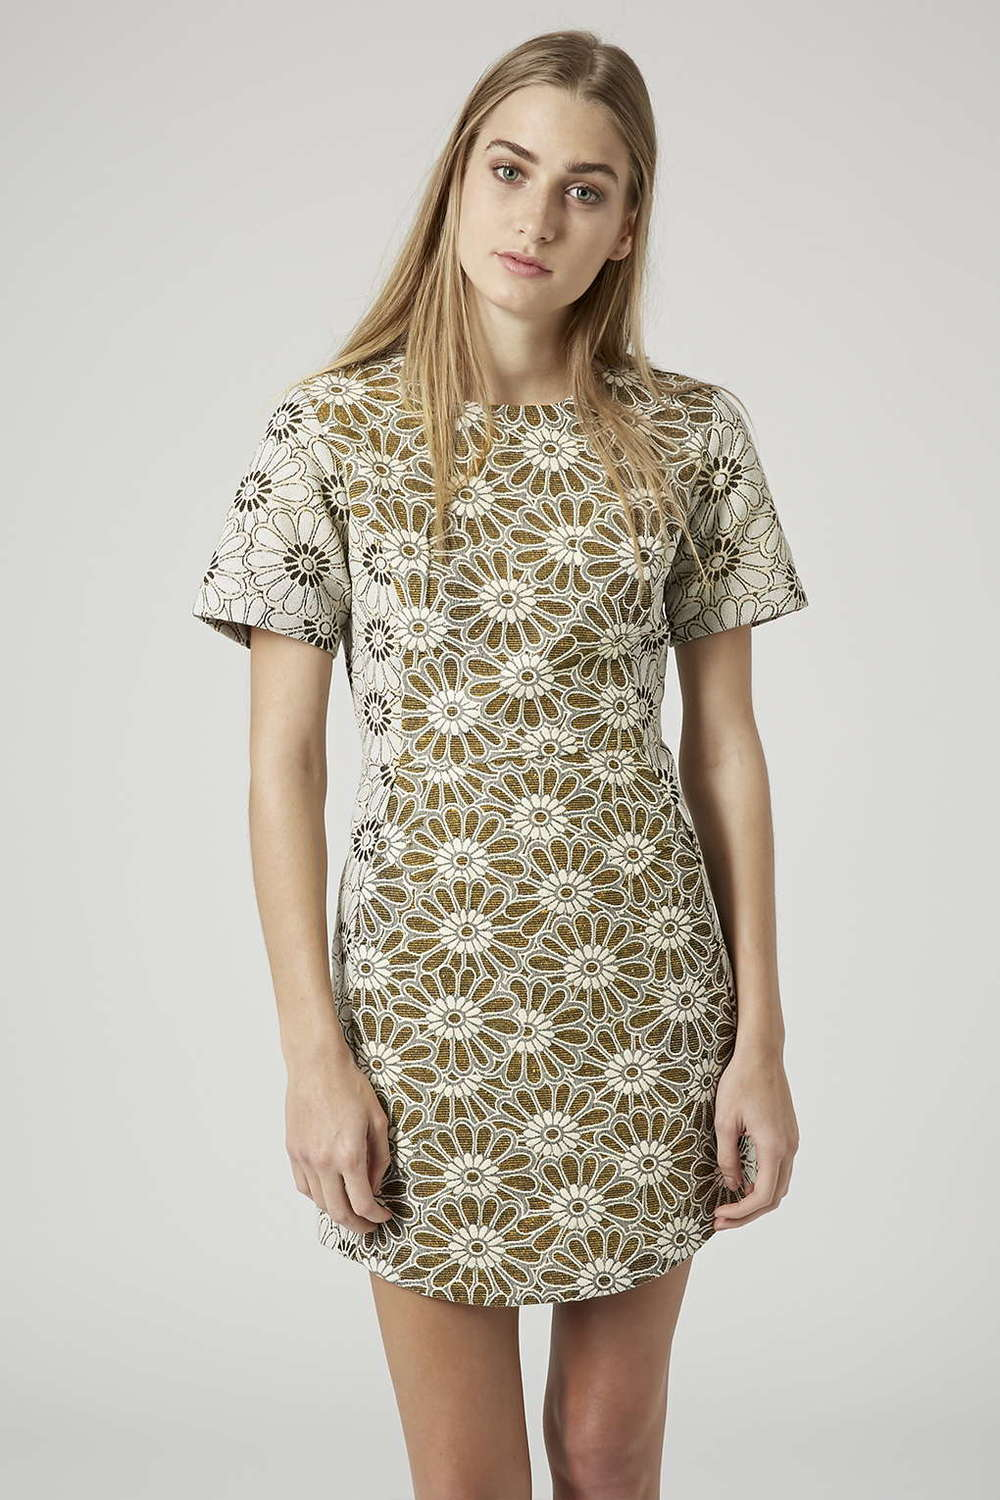 Daisy Jaquard Shift Dress: £50 Topshop